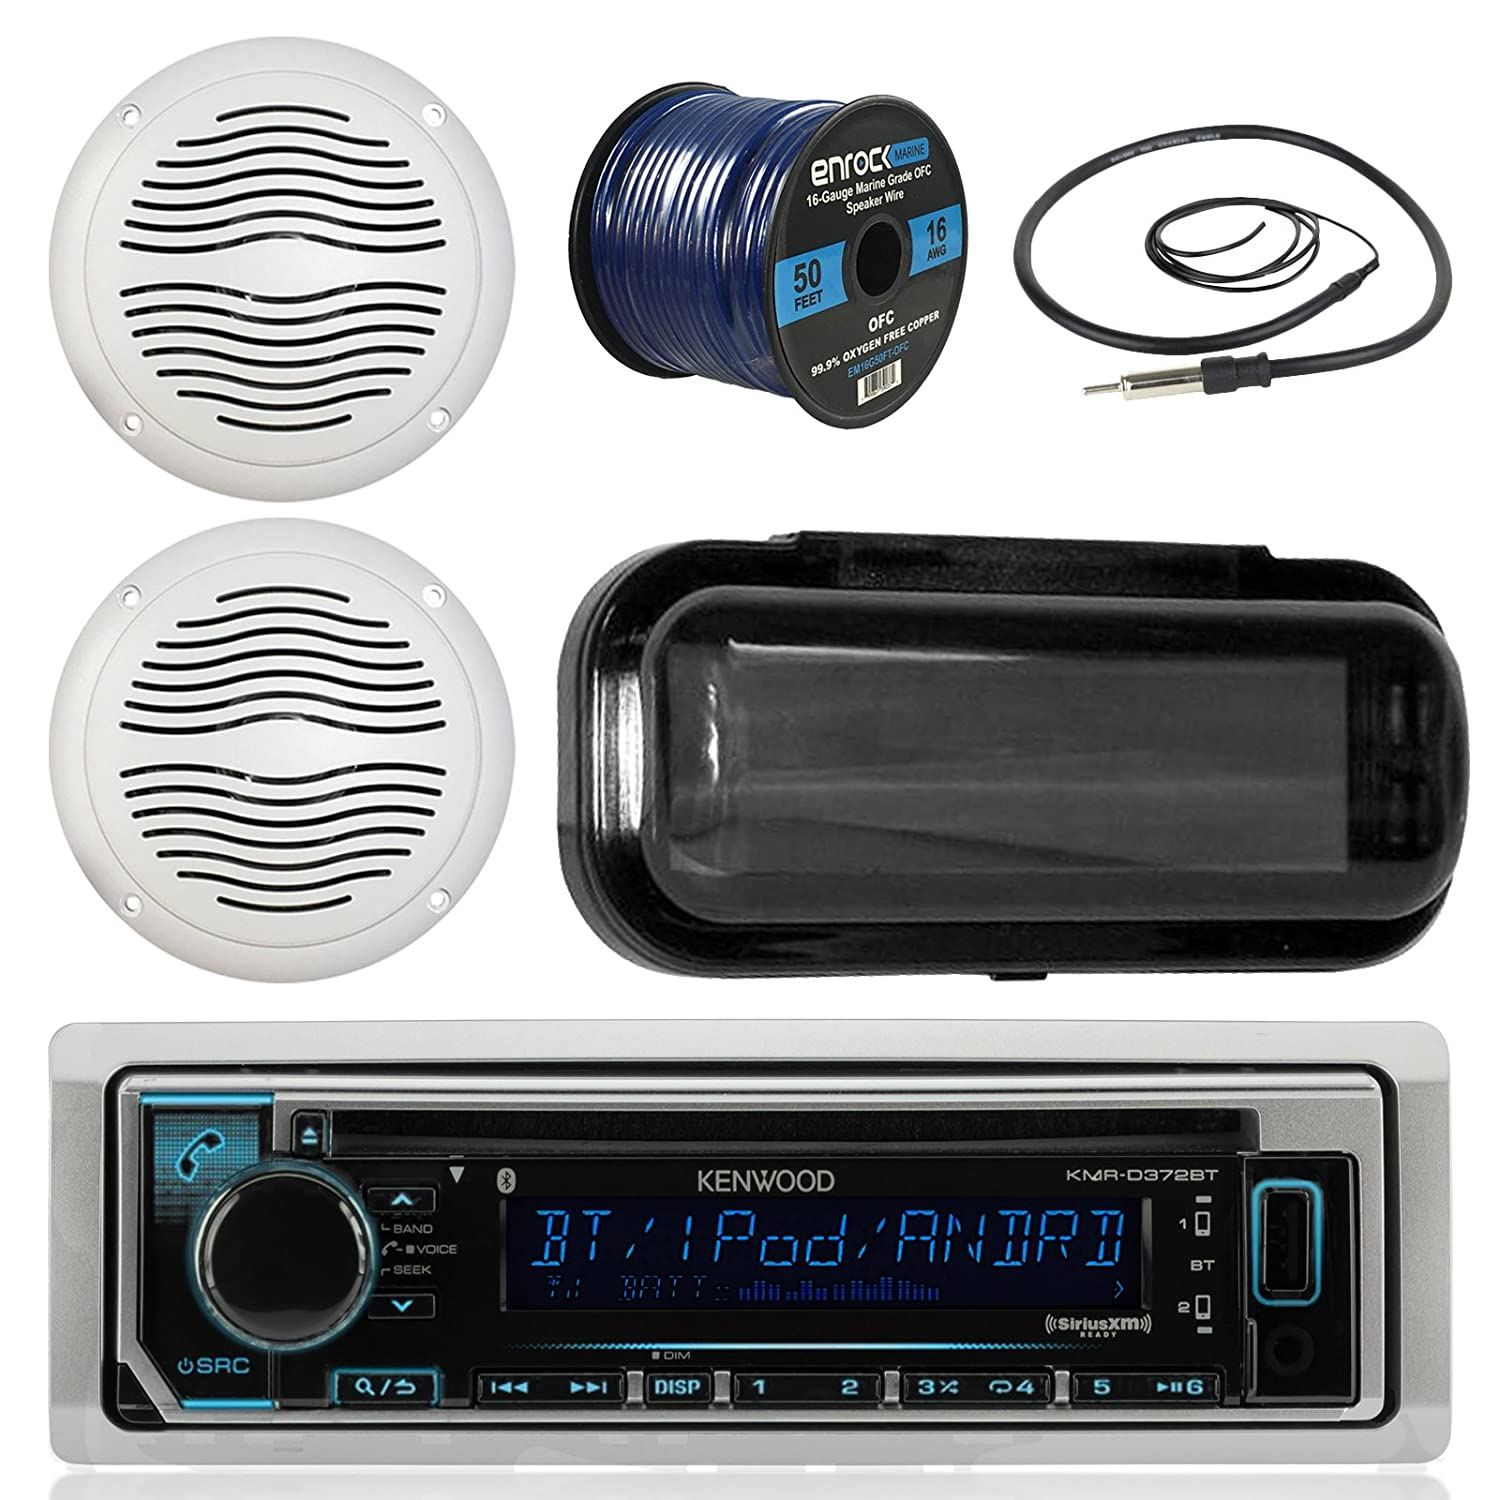 Music Player Support Aux Output with Dual USB Charging Port Wireless Radio Transmitter Car Adapter Criacr Bluetooth FM Transmitter for Car Quick Charge 3.0 Hands-Free Call for All Smartphones AMIR AMIR CP27B-CC-AUS1